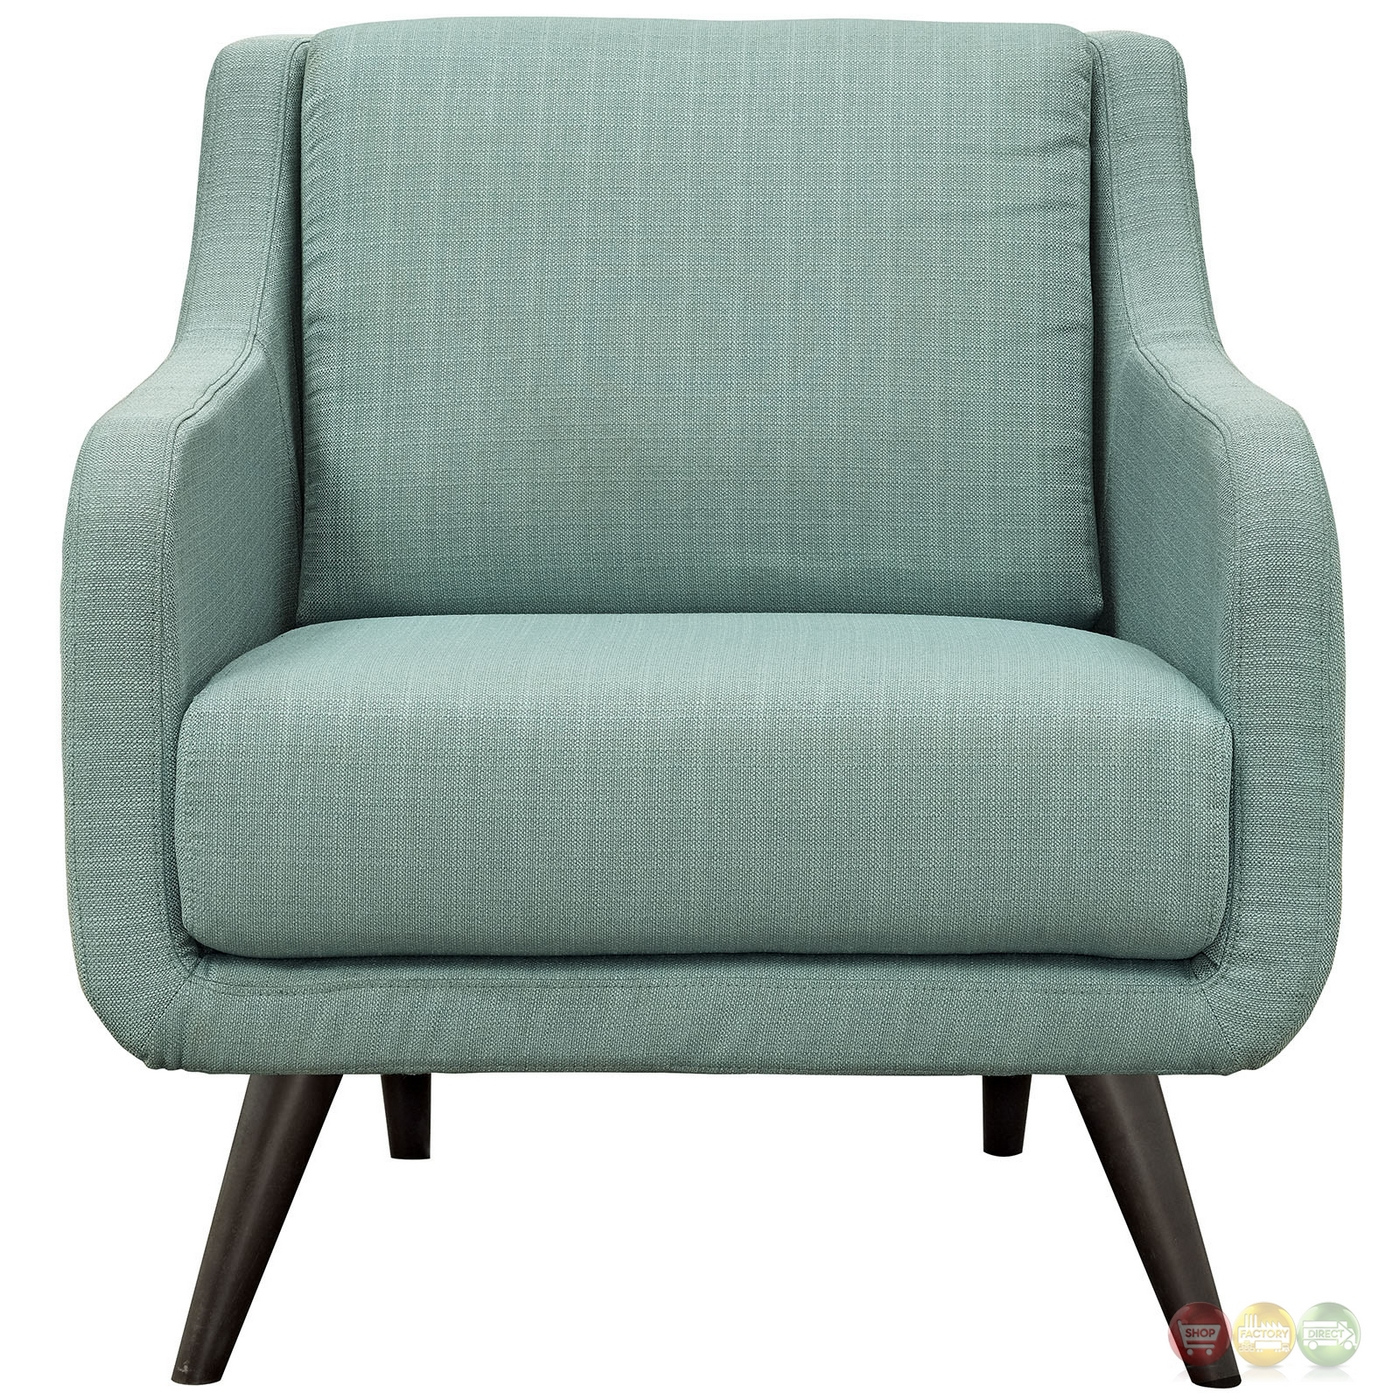 Mid Century Modern Armchairs: Verve Mid-century Modern Upholstered Armchair With Wood